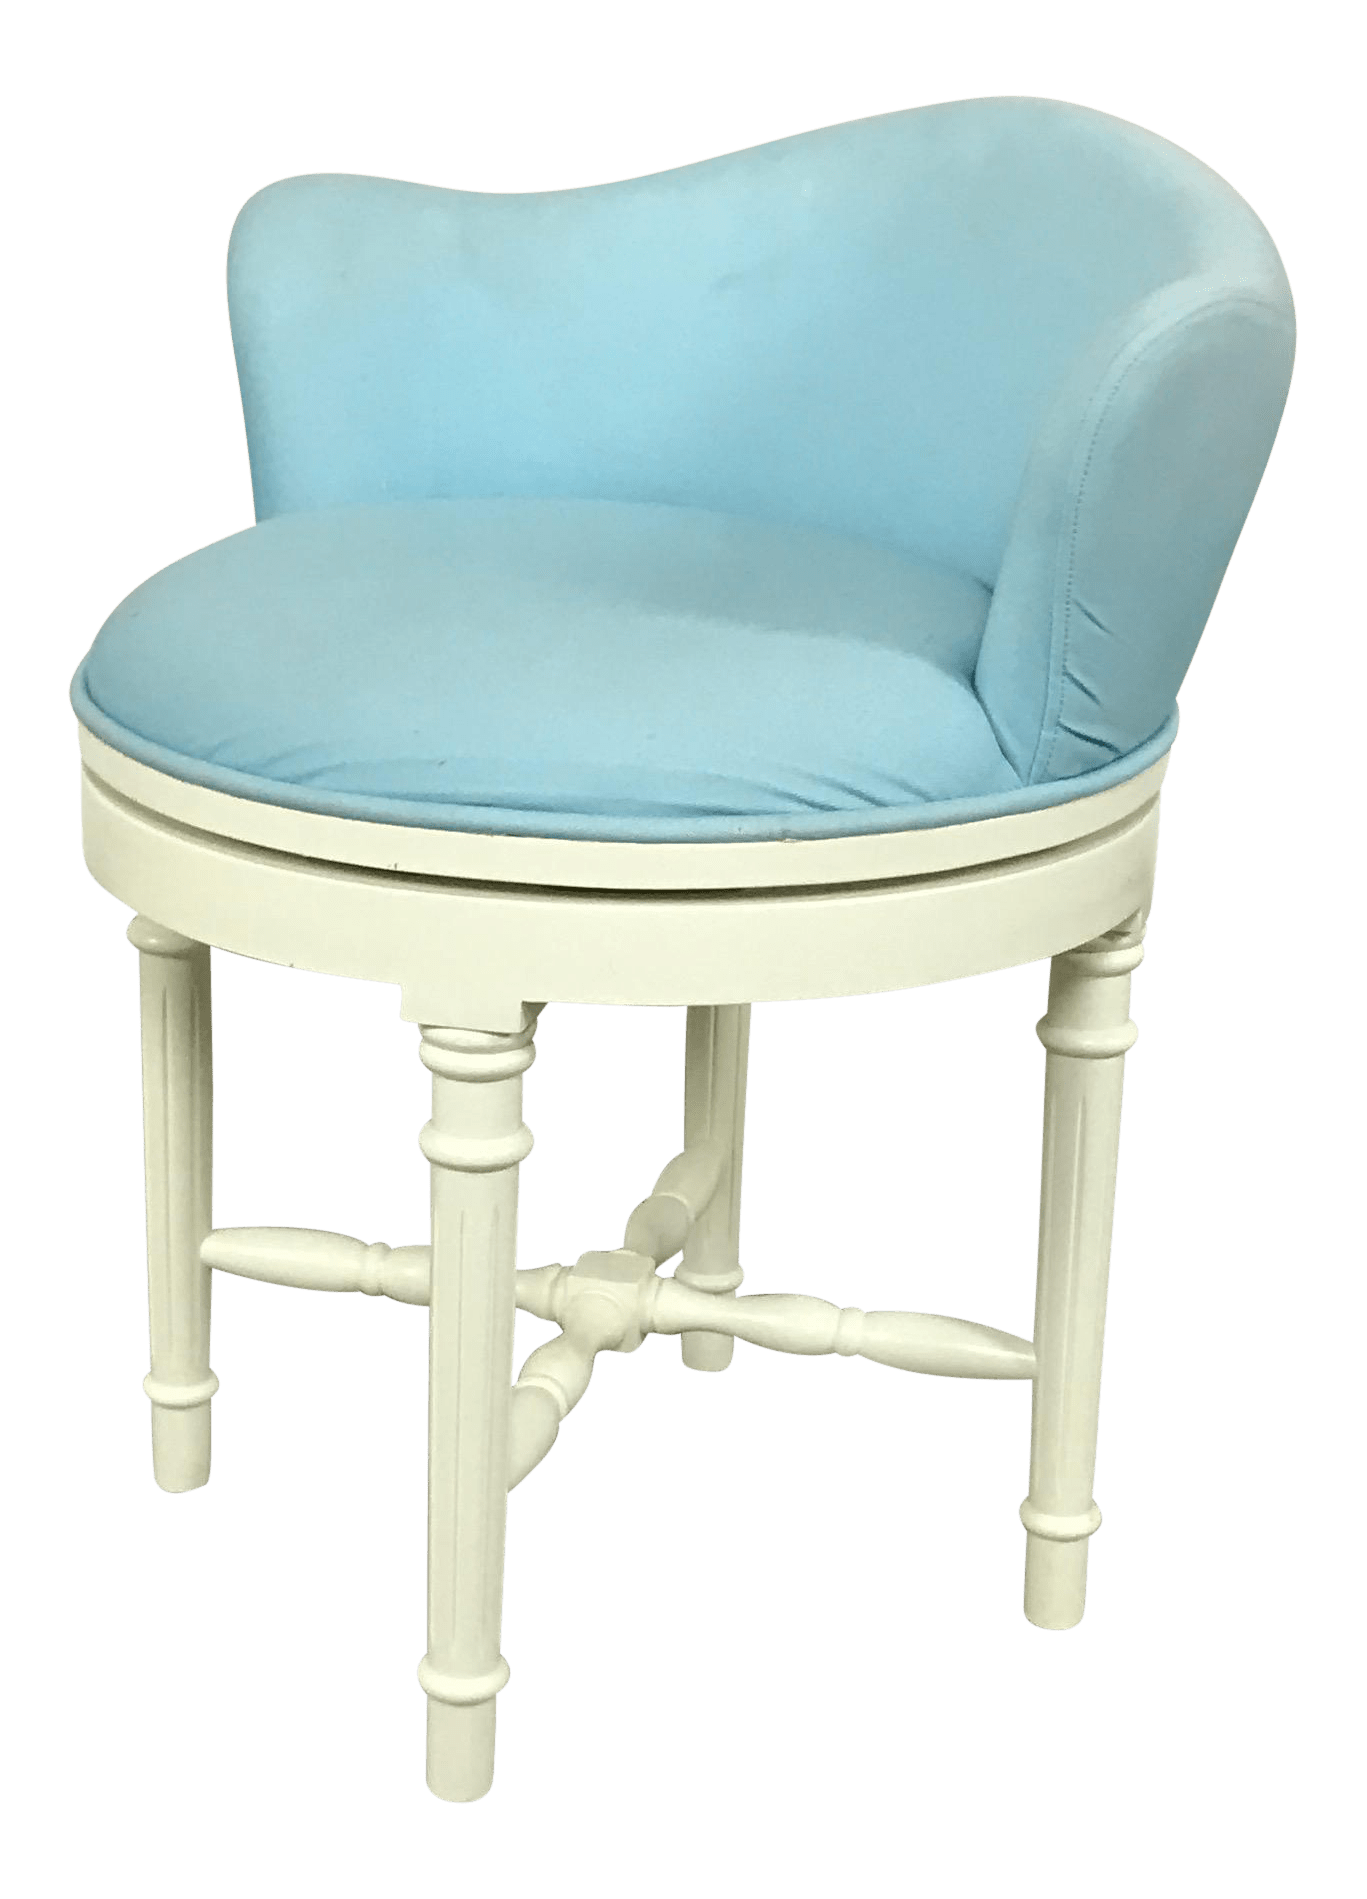 vanity chair pottery barn plastic chairs with steel legs sky blue stool chairish for sale